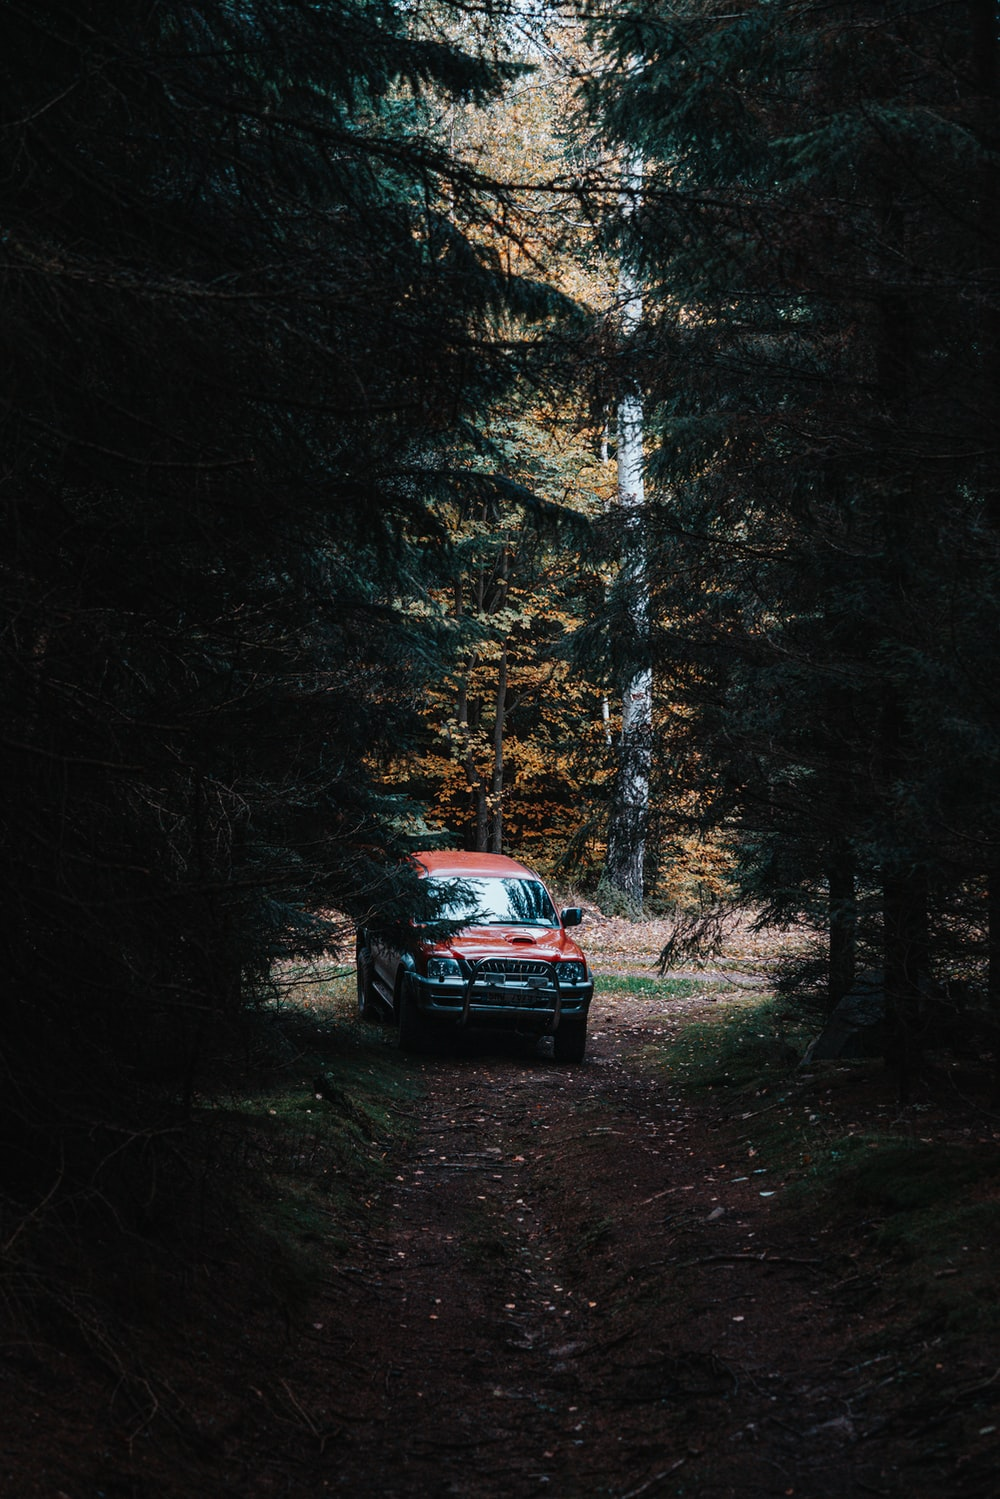 red car in the middle of forest